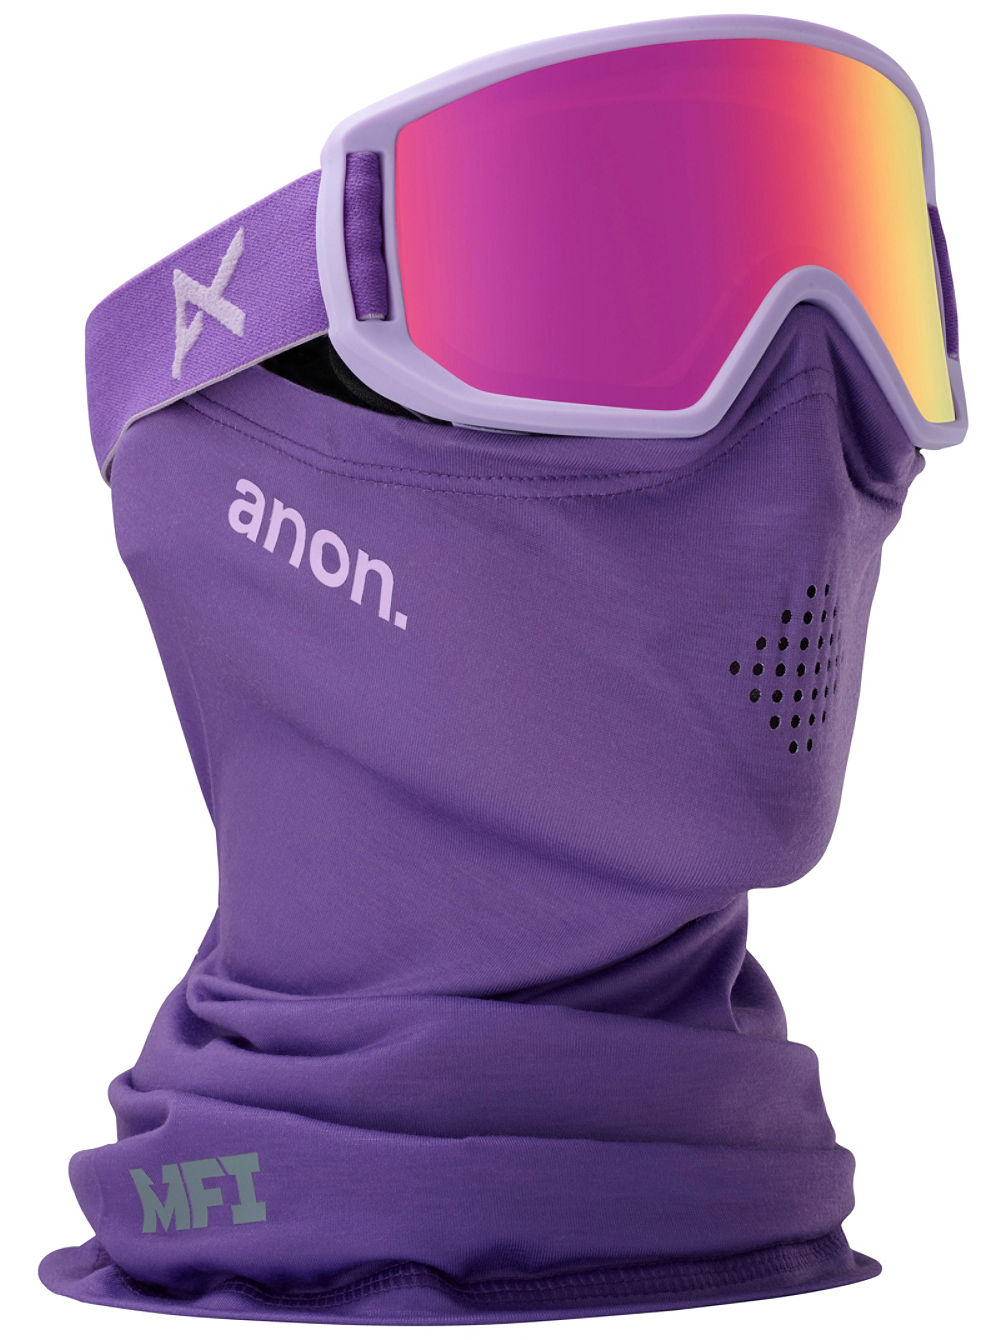 Relapse Jr MFI Purple (+Facemask) Youth Goggle